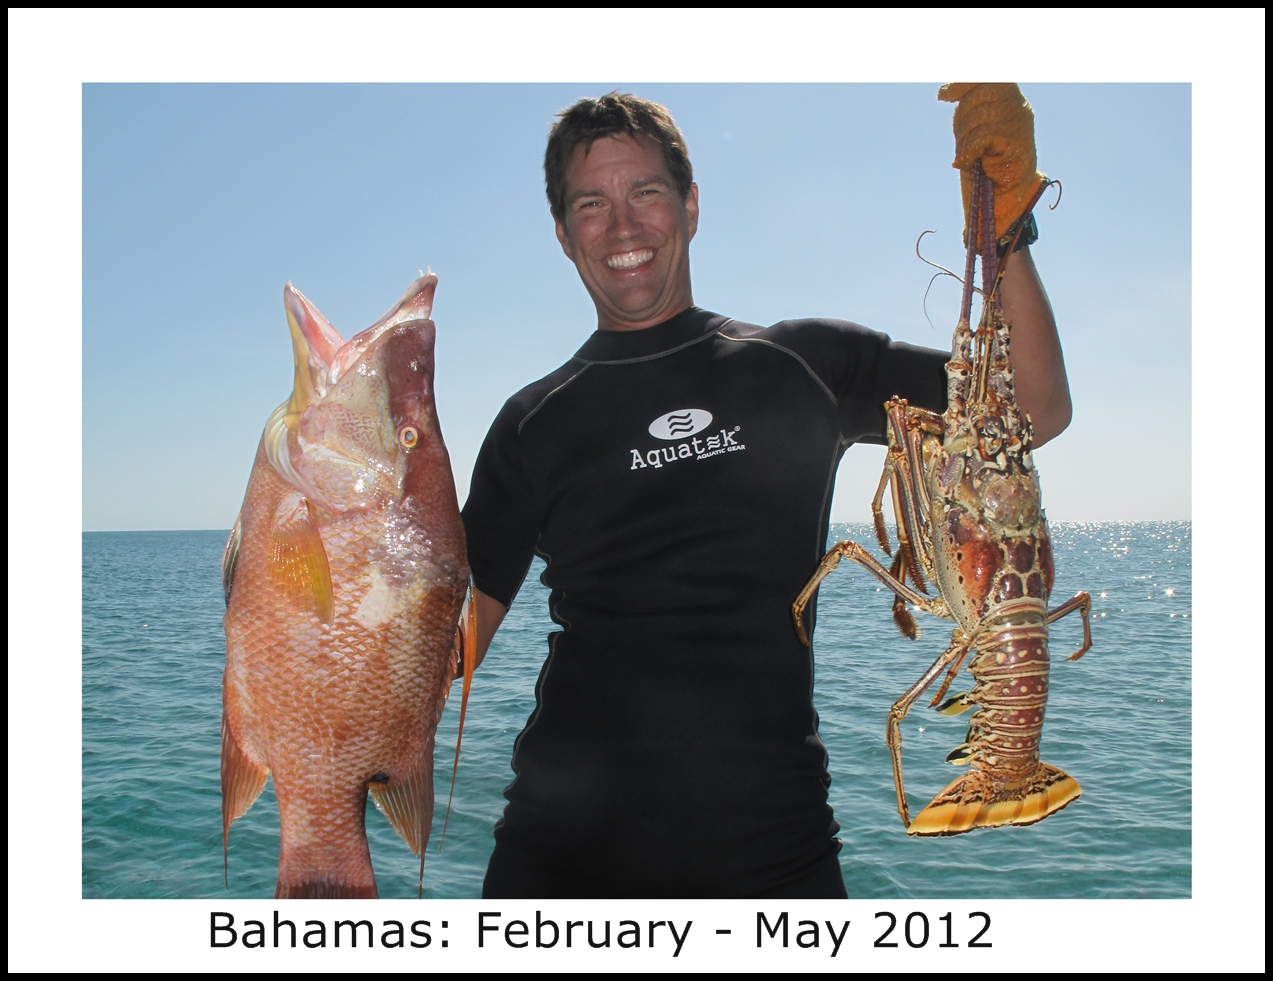 Photo_Gallery_Title_Pages/Bahamas_title.JPG